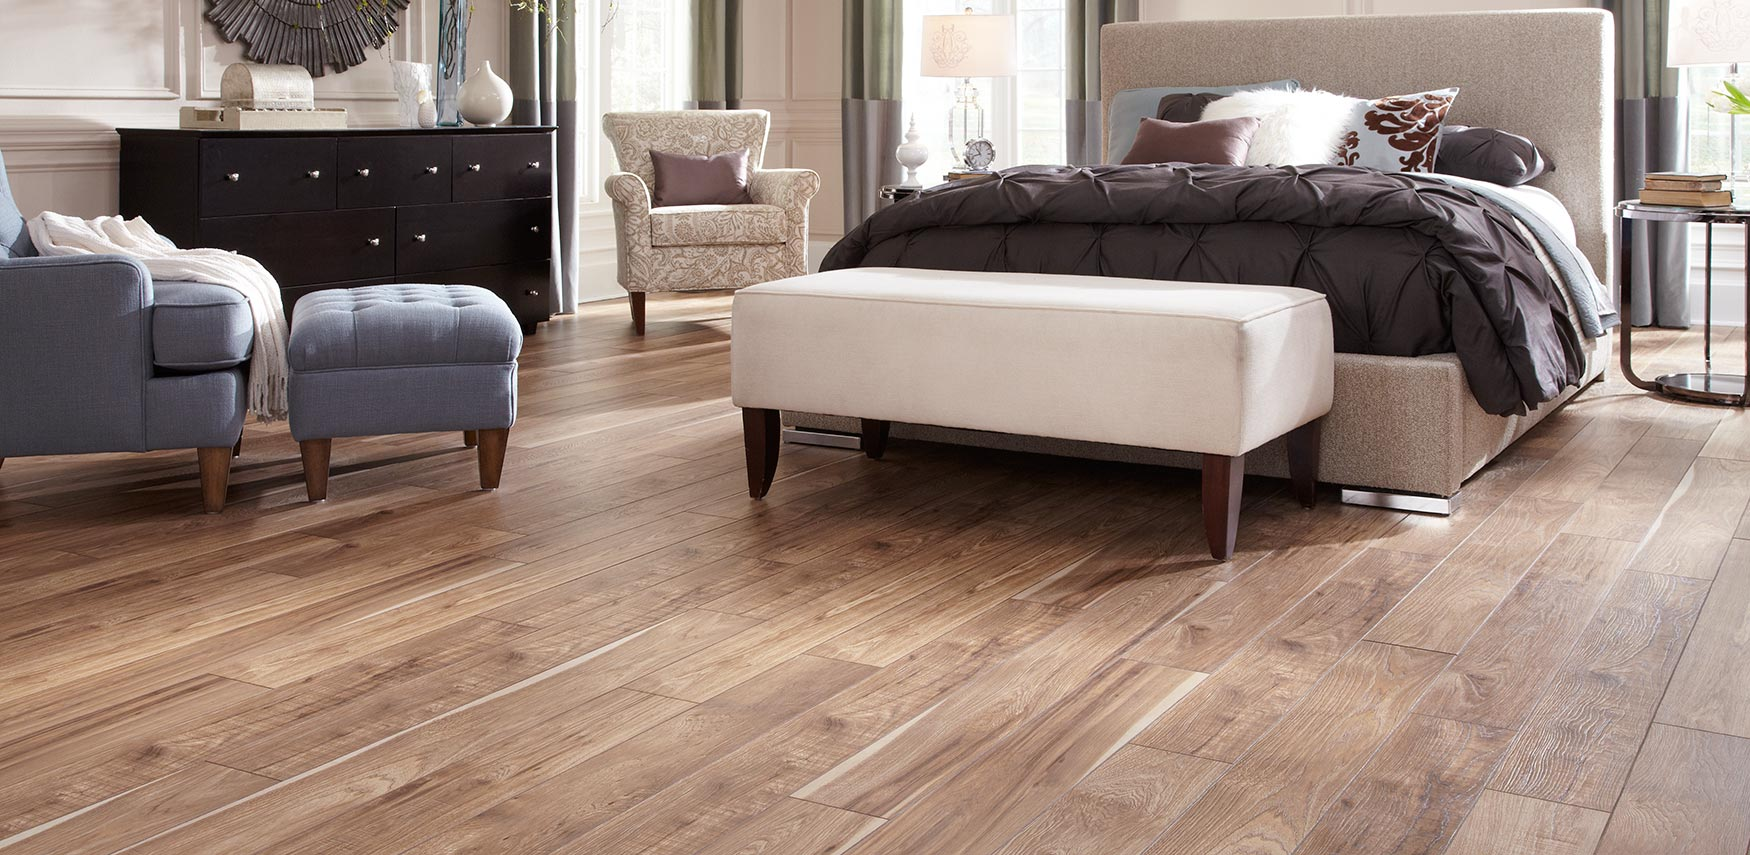 Waterproof Laminate Flooring For Kitchens Mannington Flooring Resilient Laminate Hardwood Luxury Vinyl